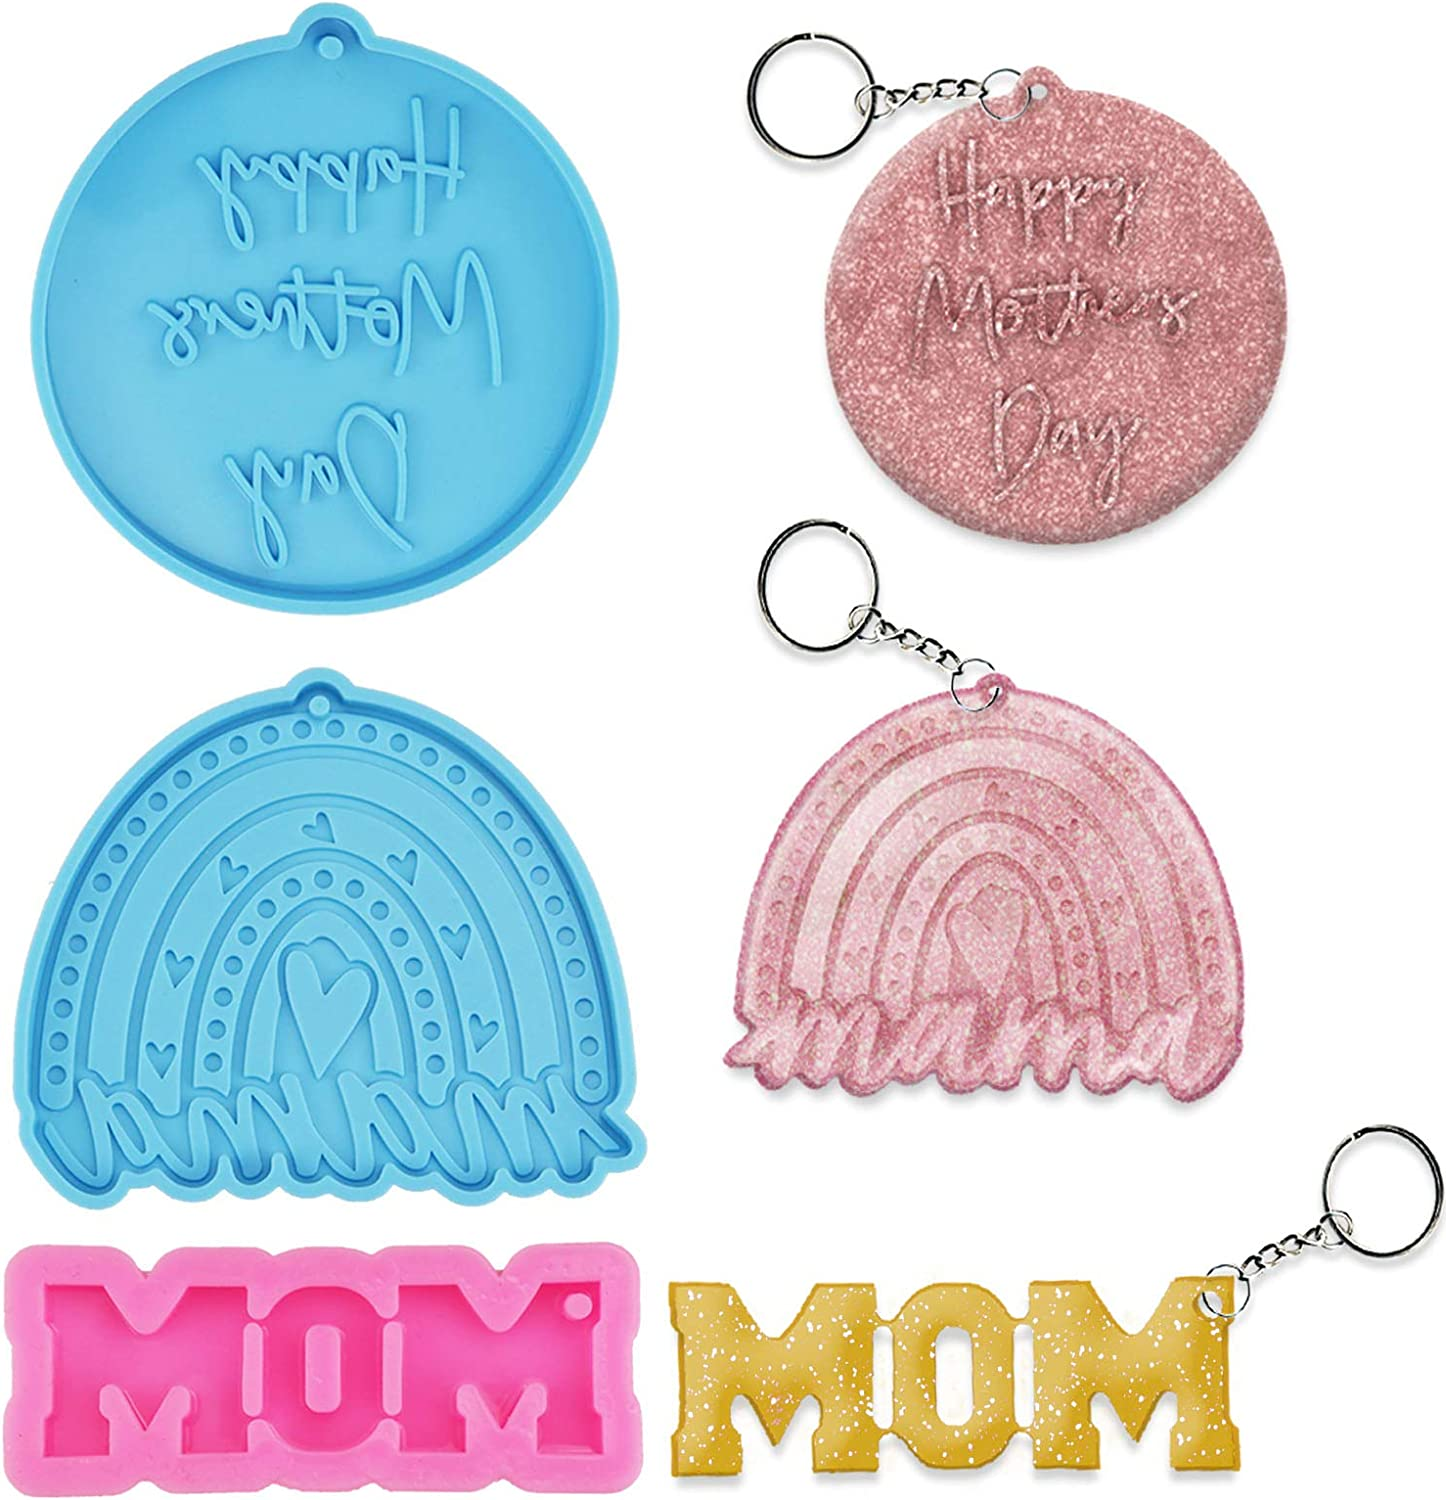 Deokke 3 Super-cheap Max 82% OFF shape MOM DAD Keychain Mom DIY for Resin Silicone Molds